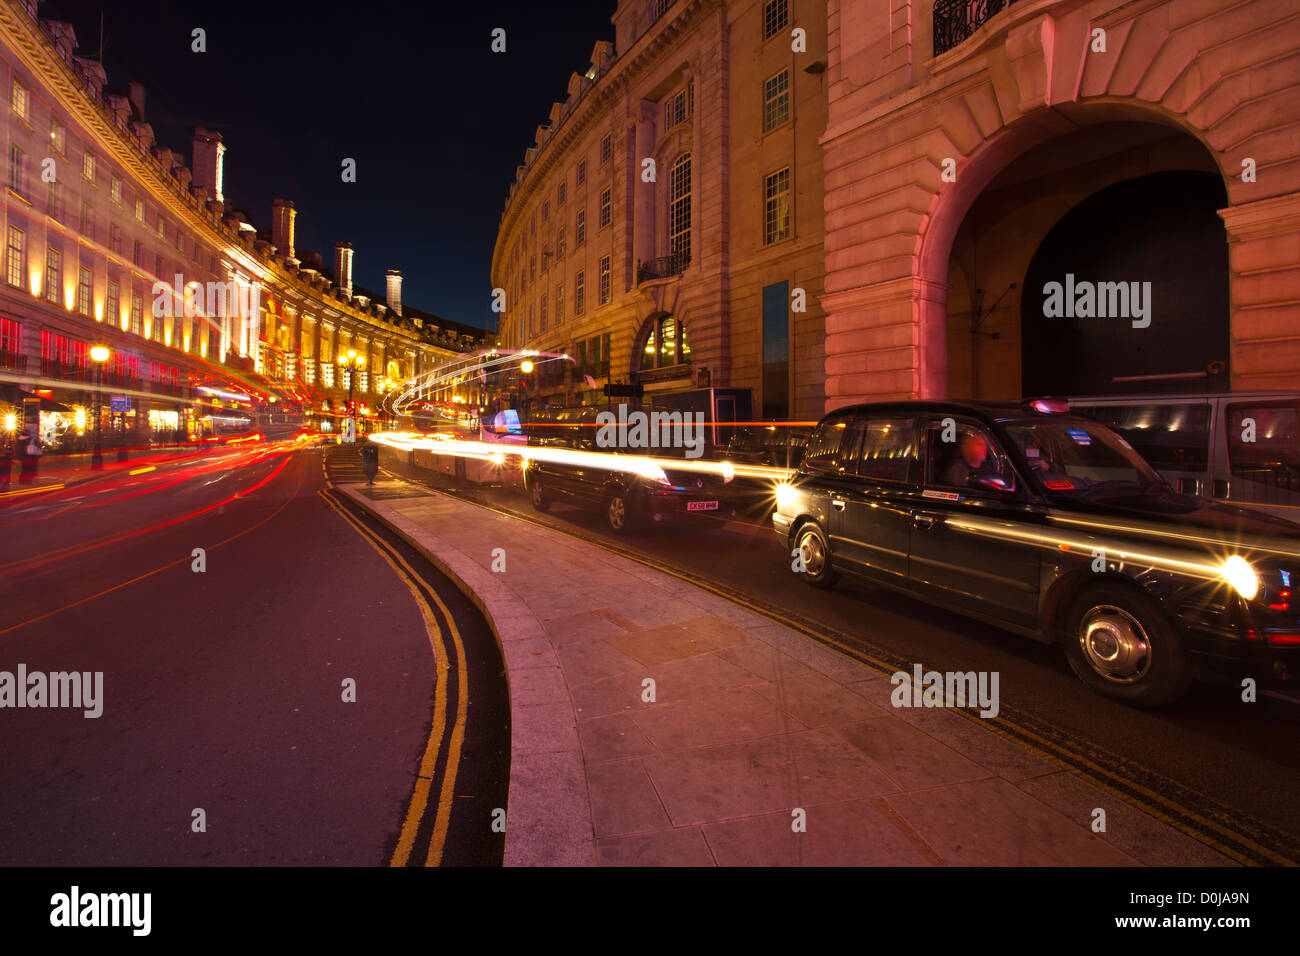 Road running from Piccadilly Circus in the West End of London. - Stock Image